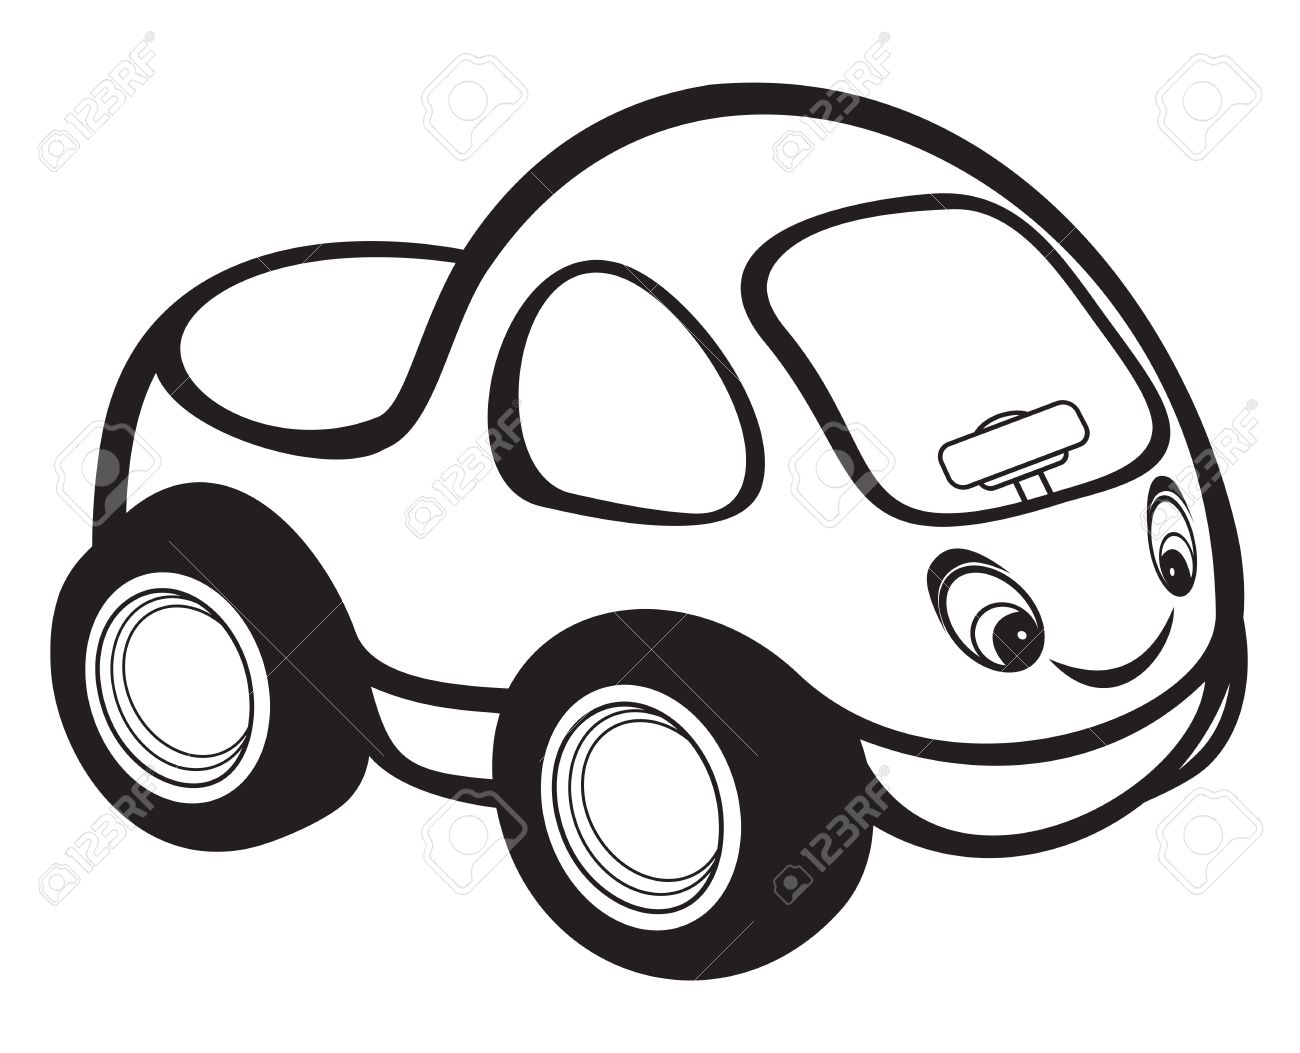 Toy car clipart black and white 6 » Clipart Station.